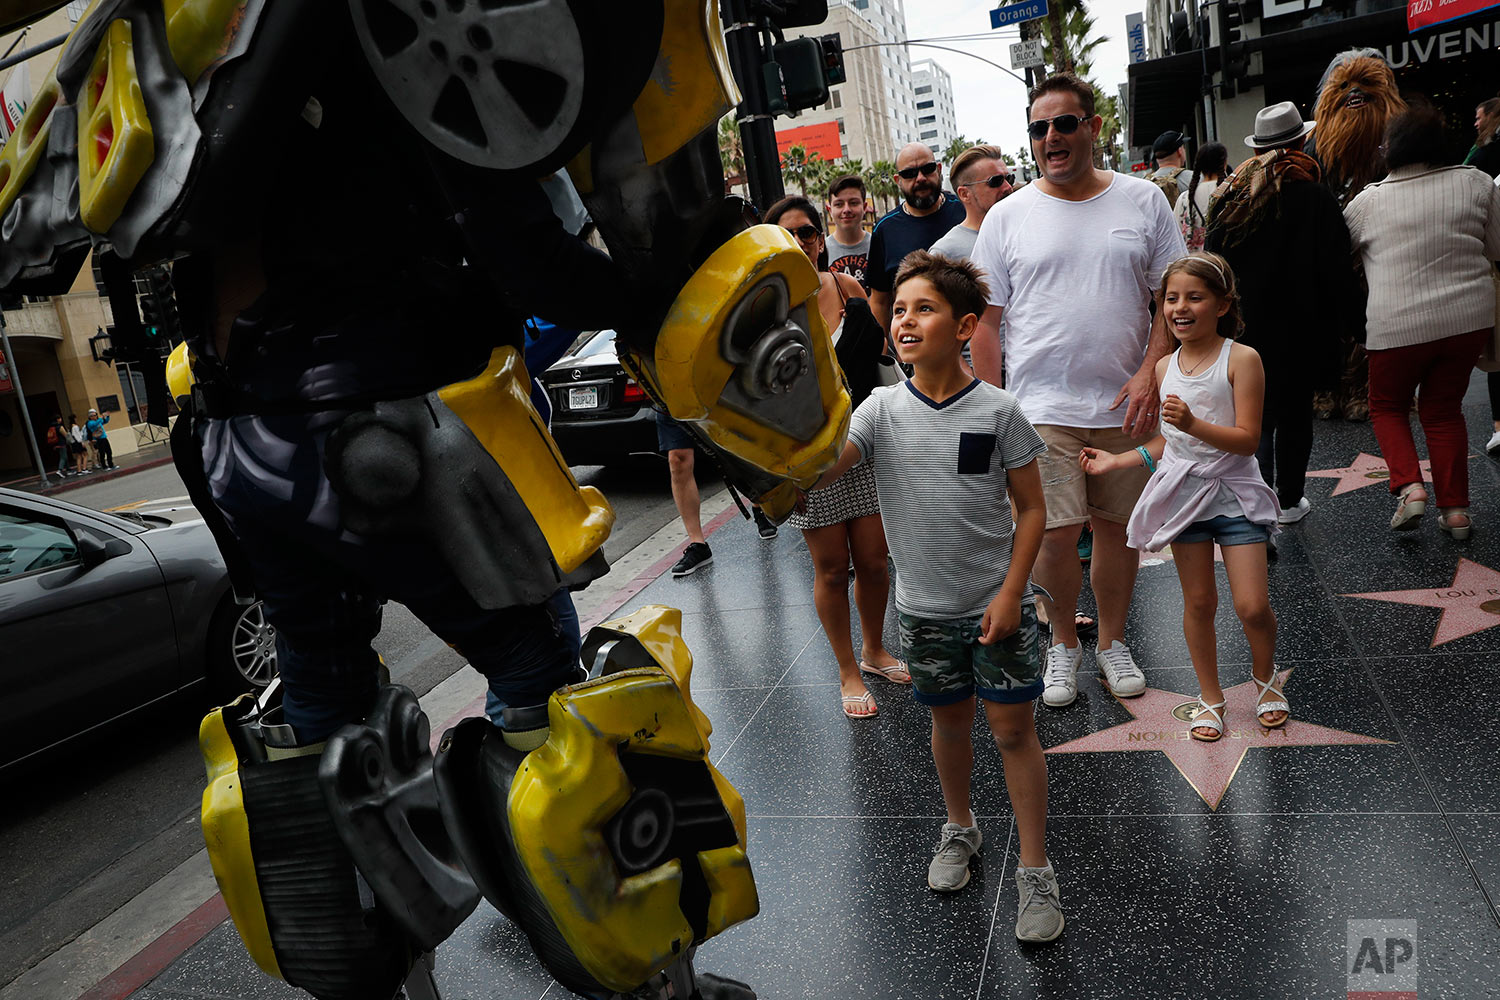 In this Friday, May 26, 2017 photo, Ramiro Rodriguez in a Bumblebee costume, a character from the Transformers movie series, shakes hands with young tourists on Hollywood Boulevard, in Los Angeles. The 39-year-old former restaurant worker from Guadalajara, Mexico, changed his career after watching a film on Hollywood characters. Rodriguez and his brother invested all their savings in the costume. Even on bad days, Rodriguez said they still make enough to buy dinner. (AP Photo/Jae C. Hong)